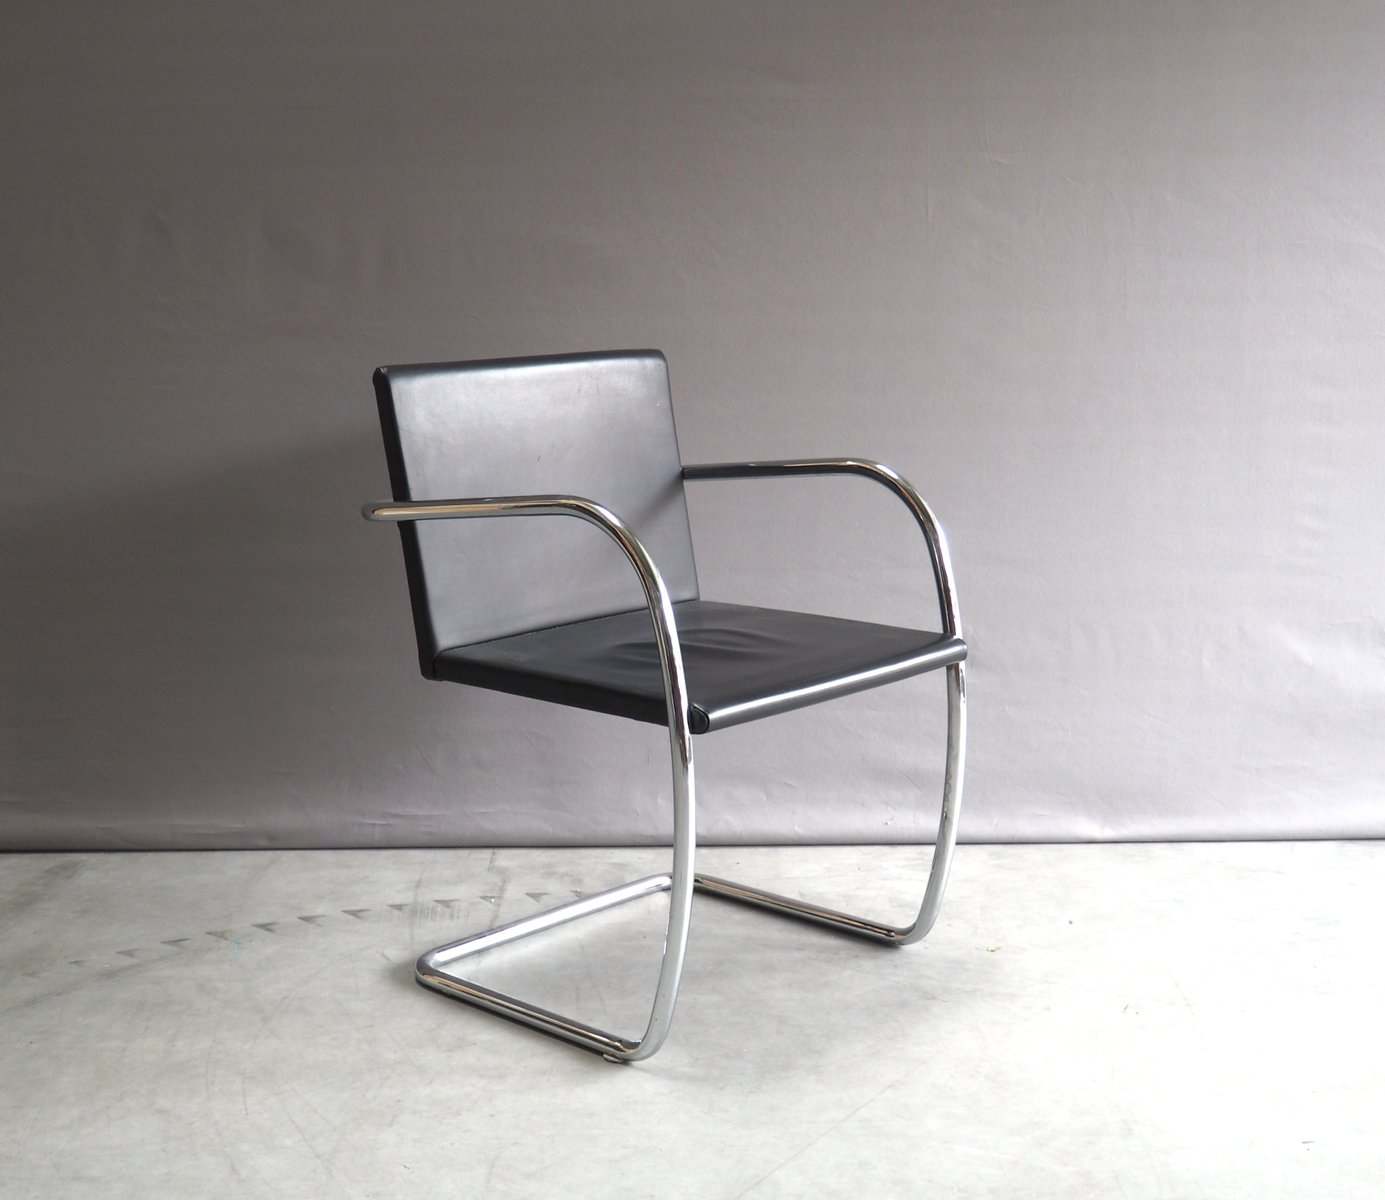 chrome and leather brno chair by mies van der rohe for knoll 1930s for sale at pamono. Black Bedroom Furniture Sets. Home Design Ideas